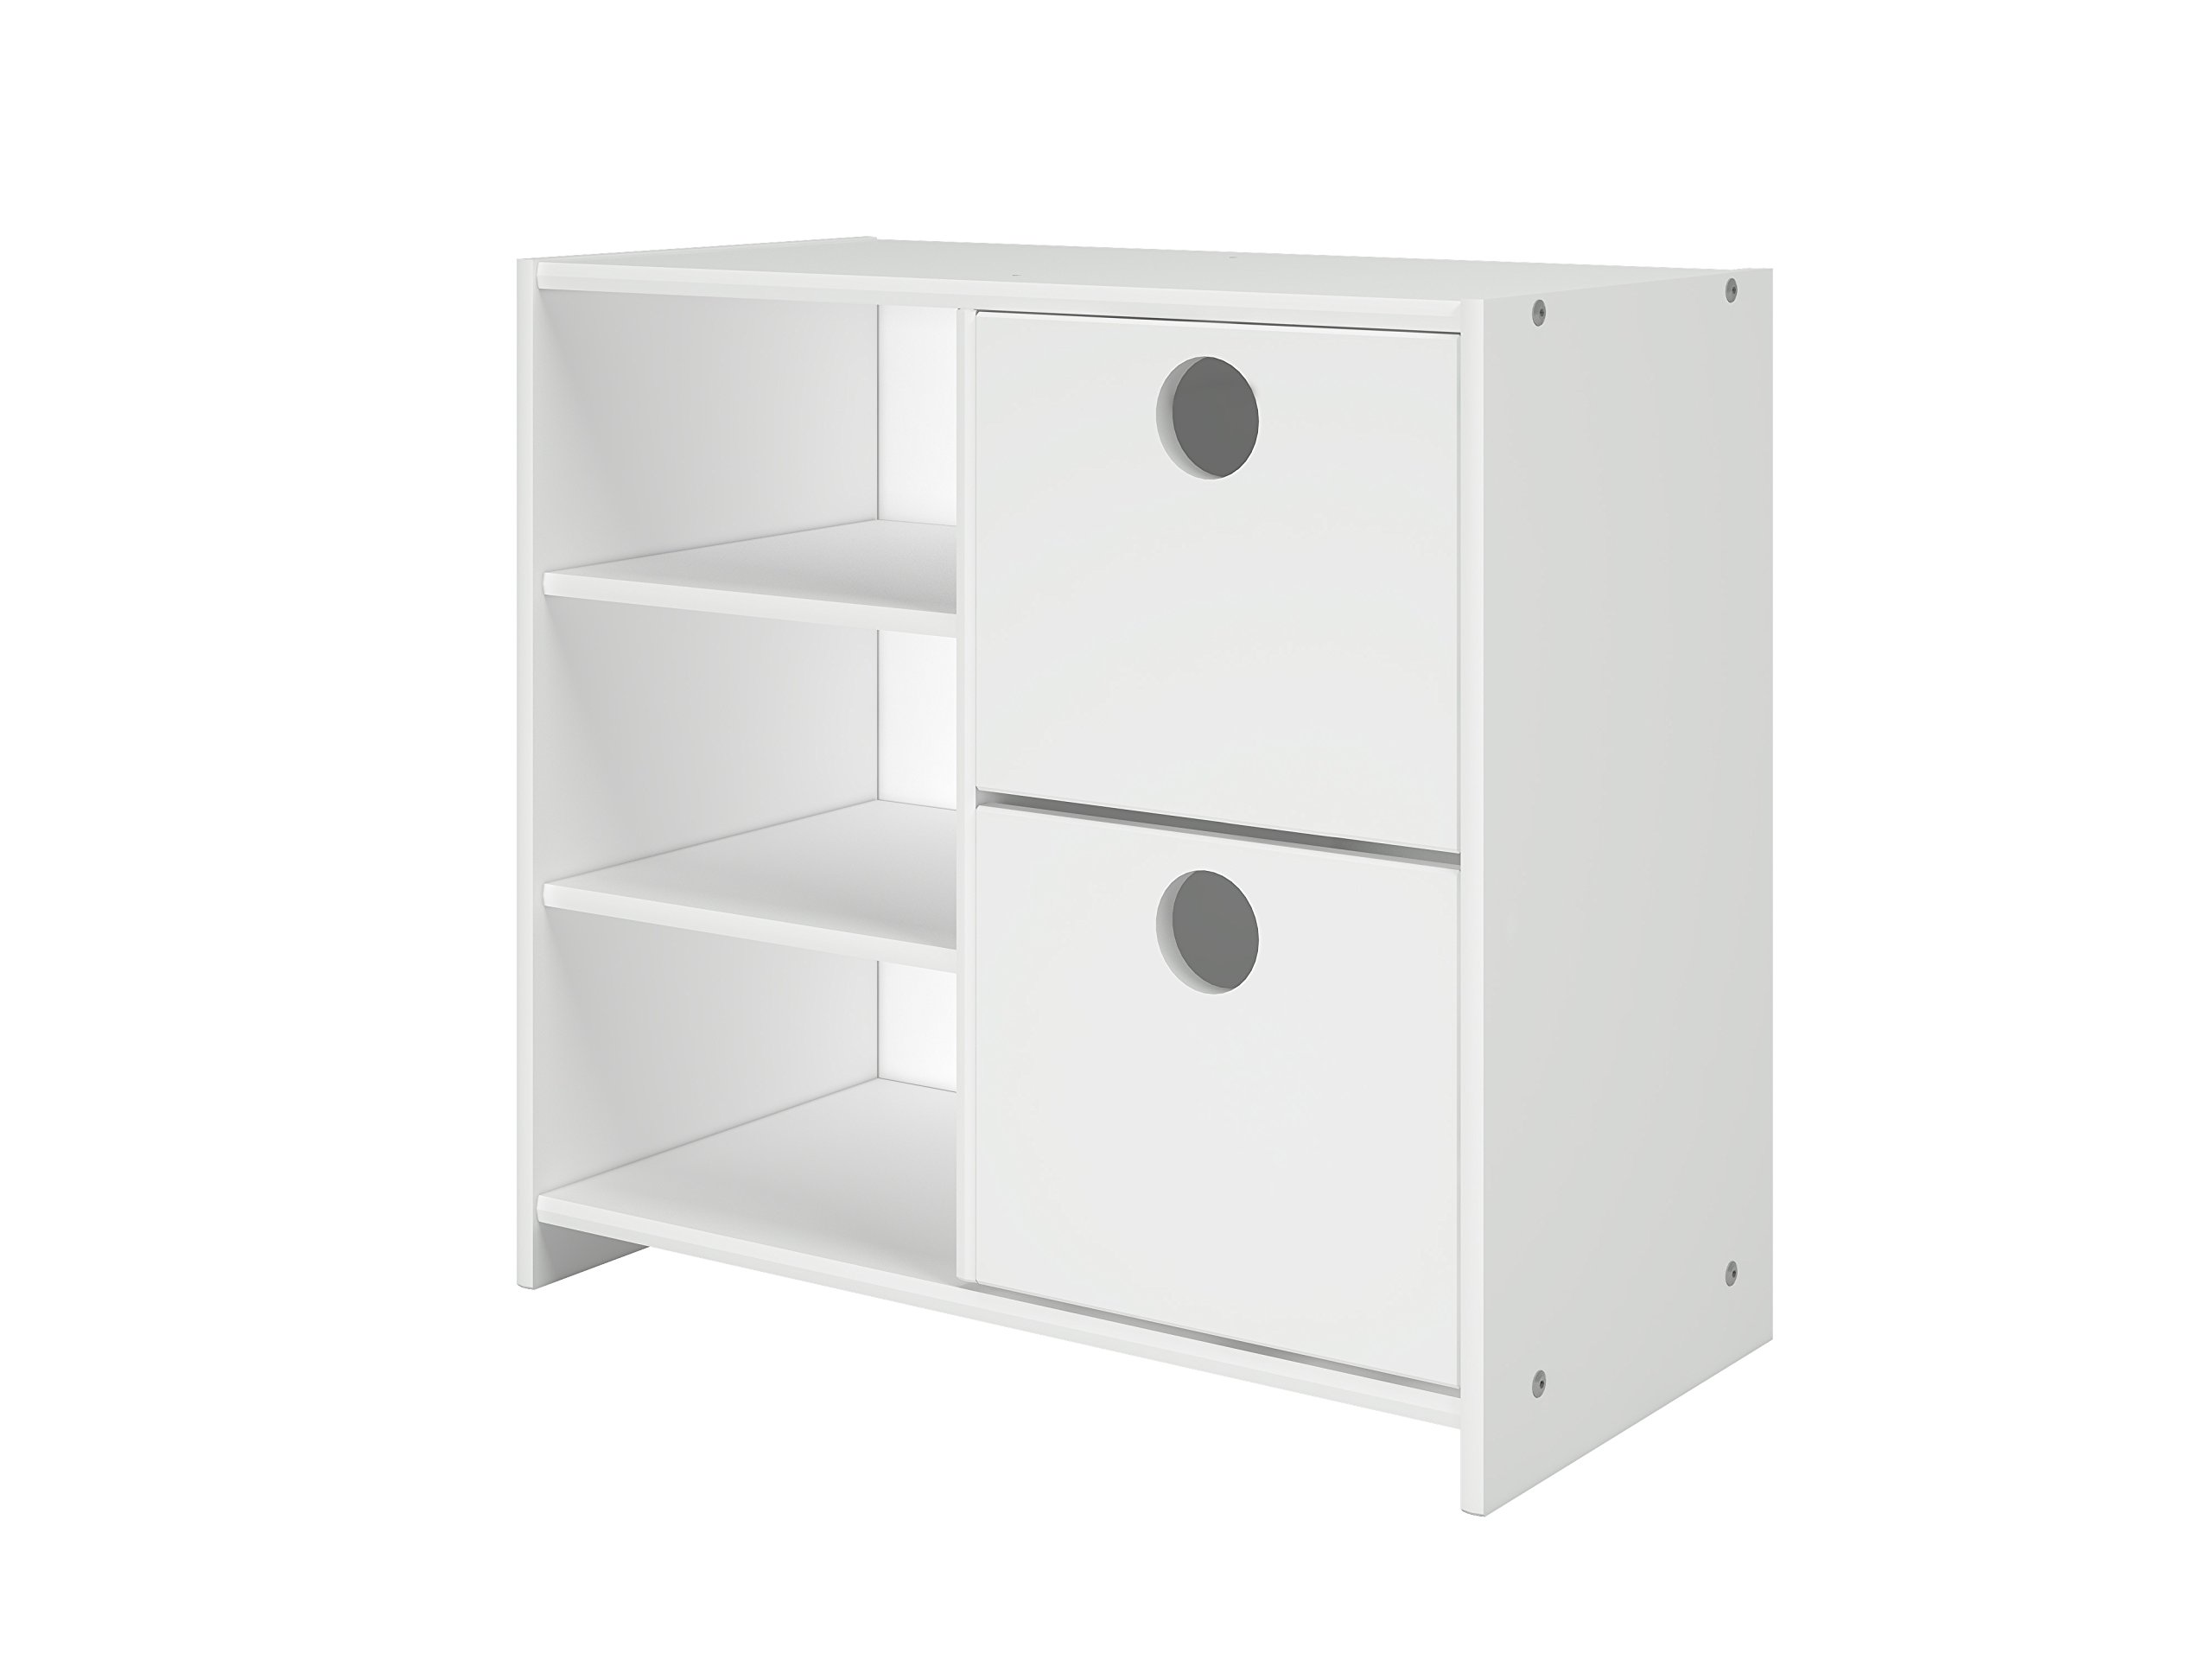 DONCO KIDS Circles Low Loft 2 Drawer chest with Shelves in White finish